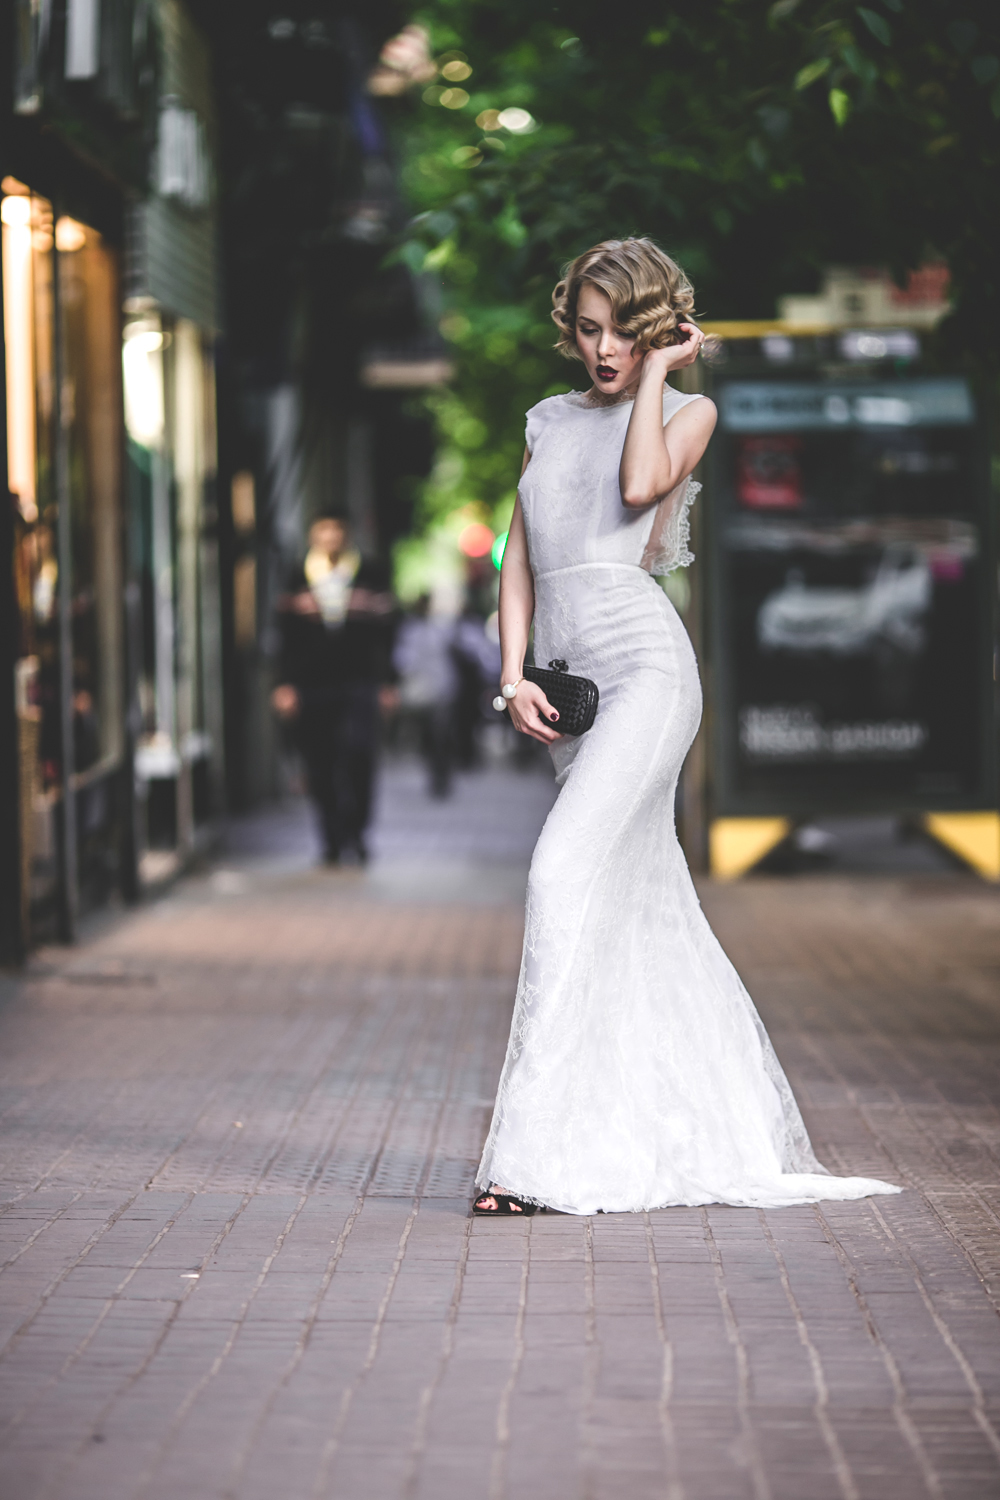 darya kamalova fashion blogger from thecablook in trip in Barcelona Spain with Pronovias 2015 wedding dresses collection catwalk wearing uel camilo white gown bottega veneta knot clutch and black lips-1889